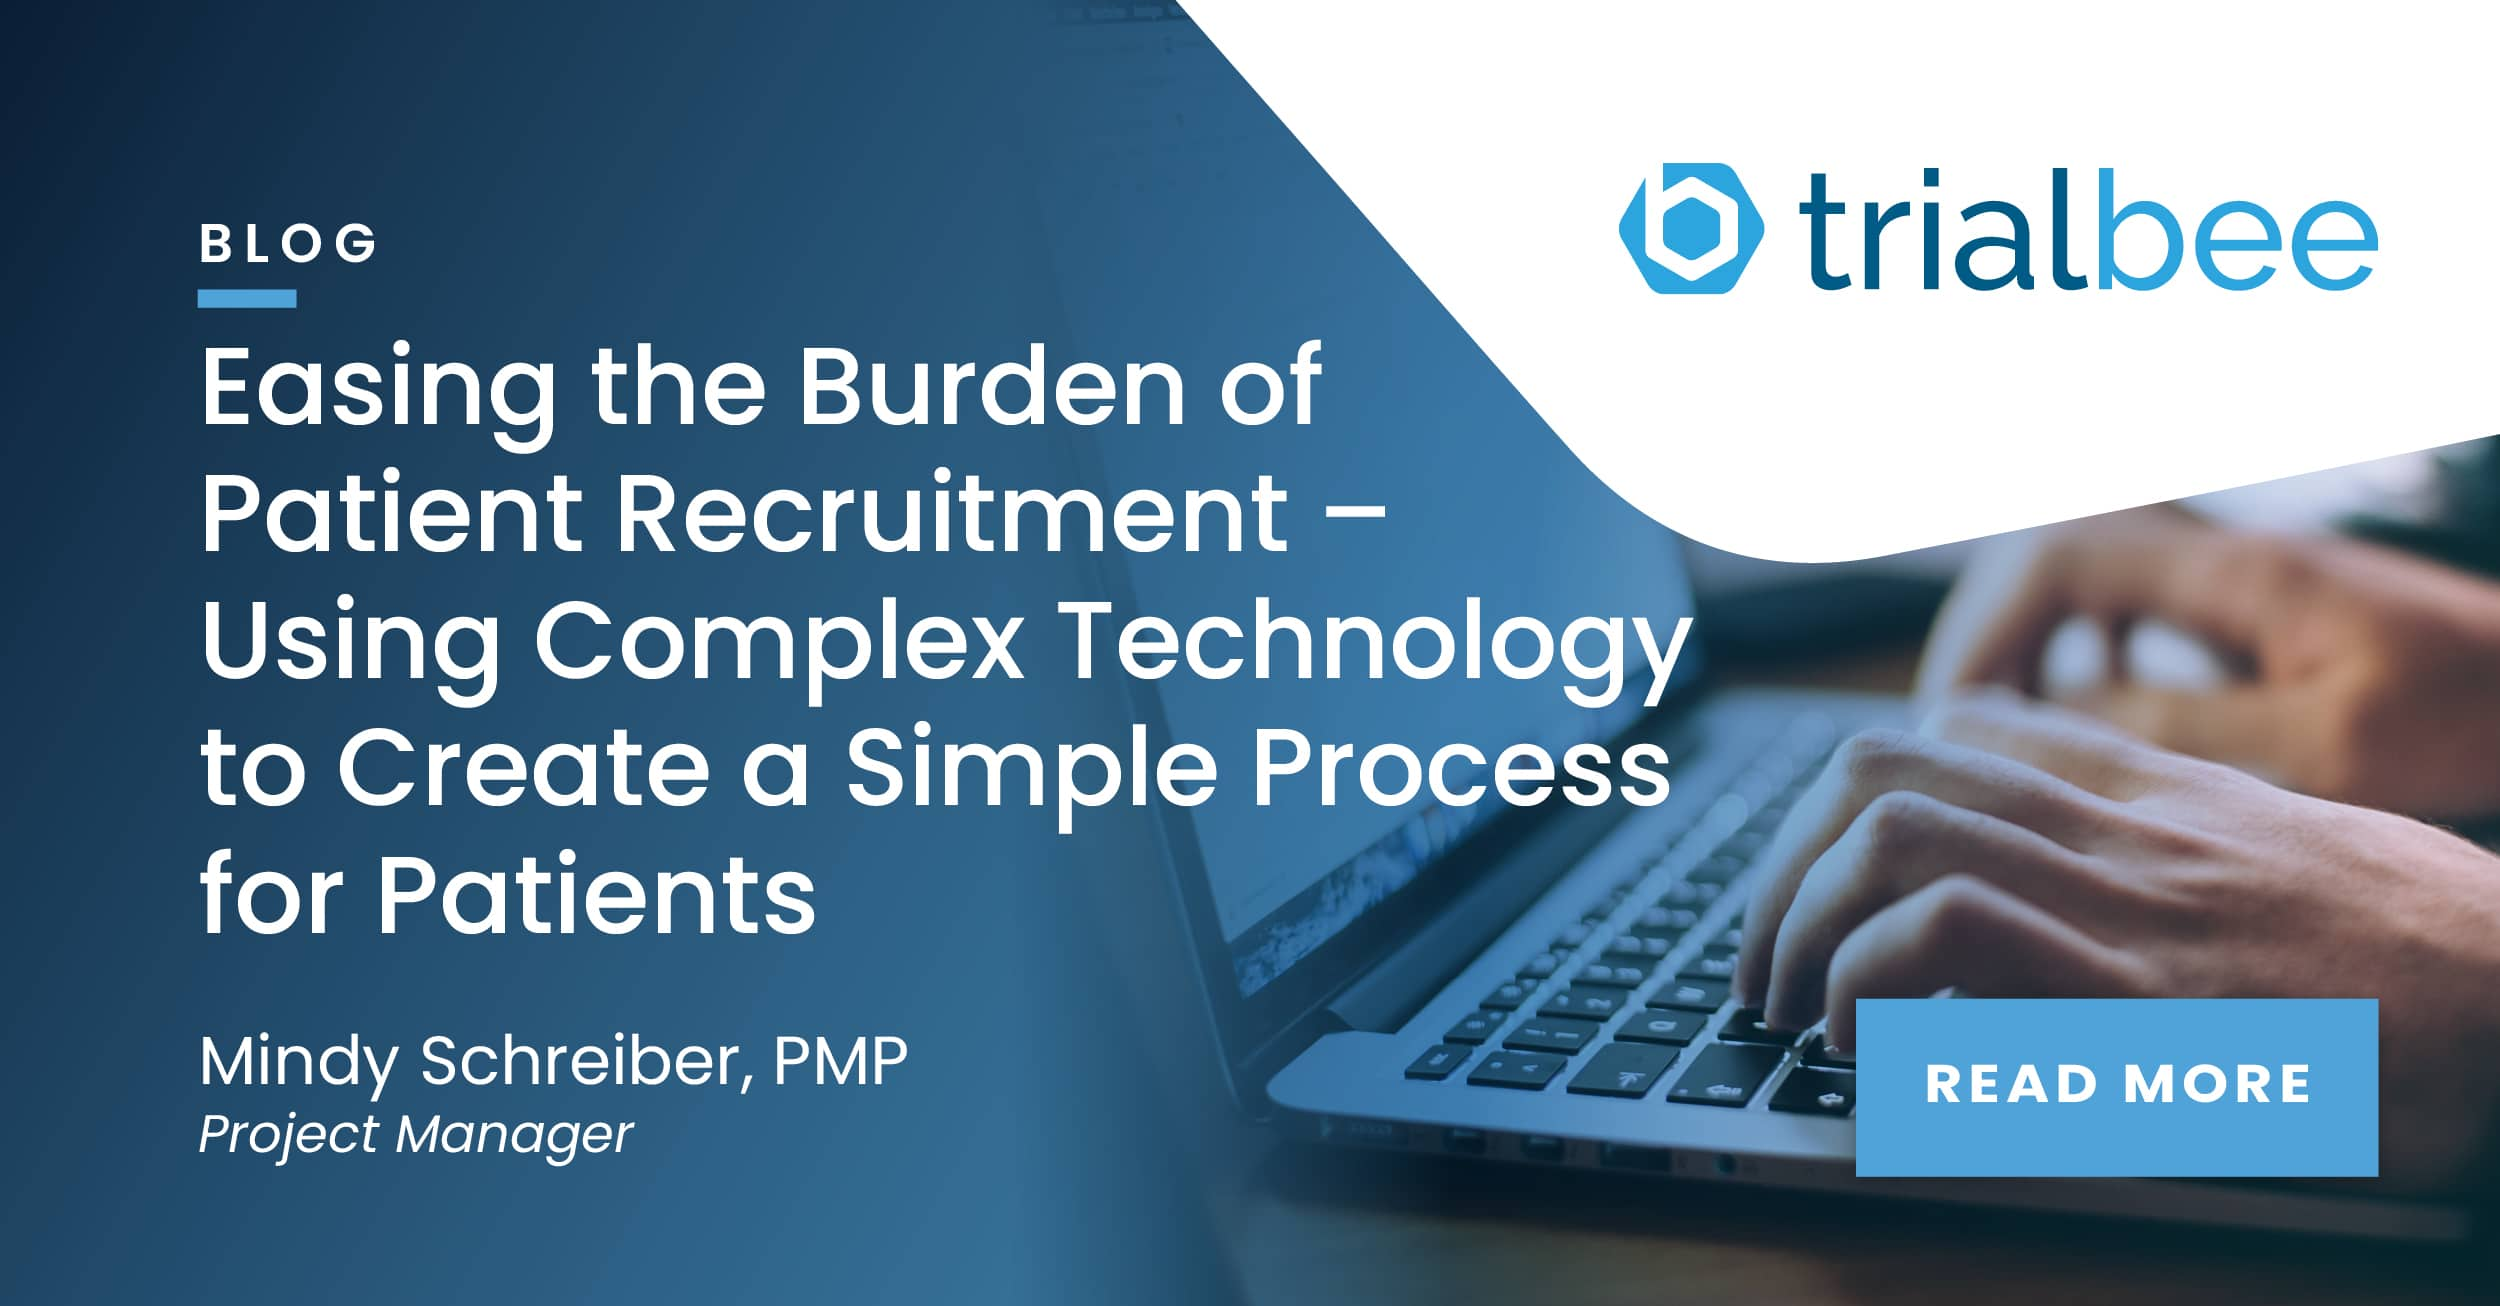 Easing the Burden of Patient Recruitment – Using Complex Technology to Create a Simple Process for Patients